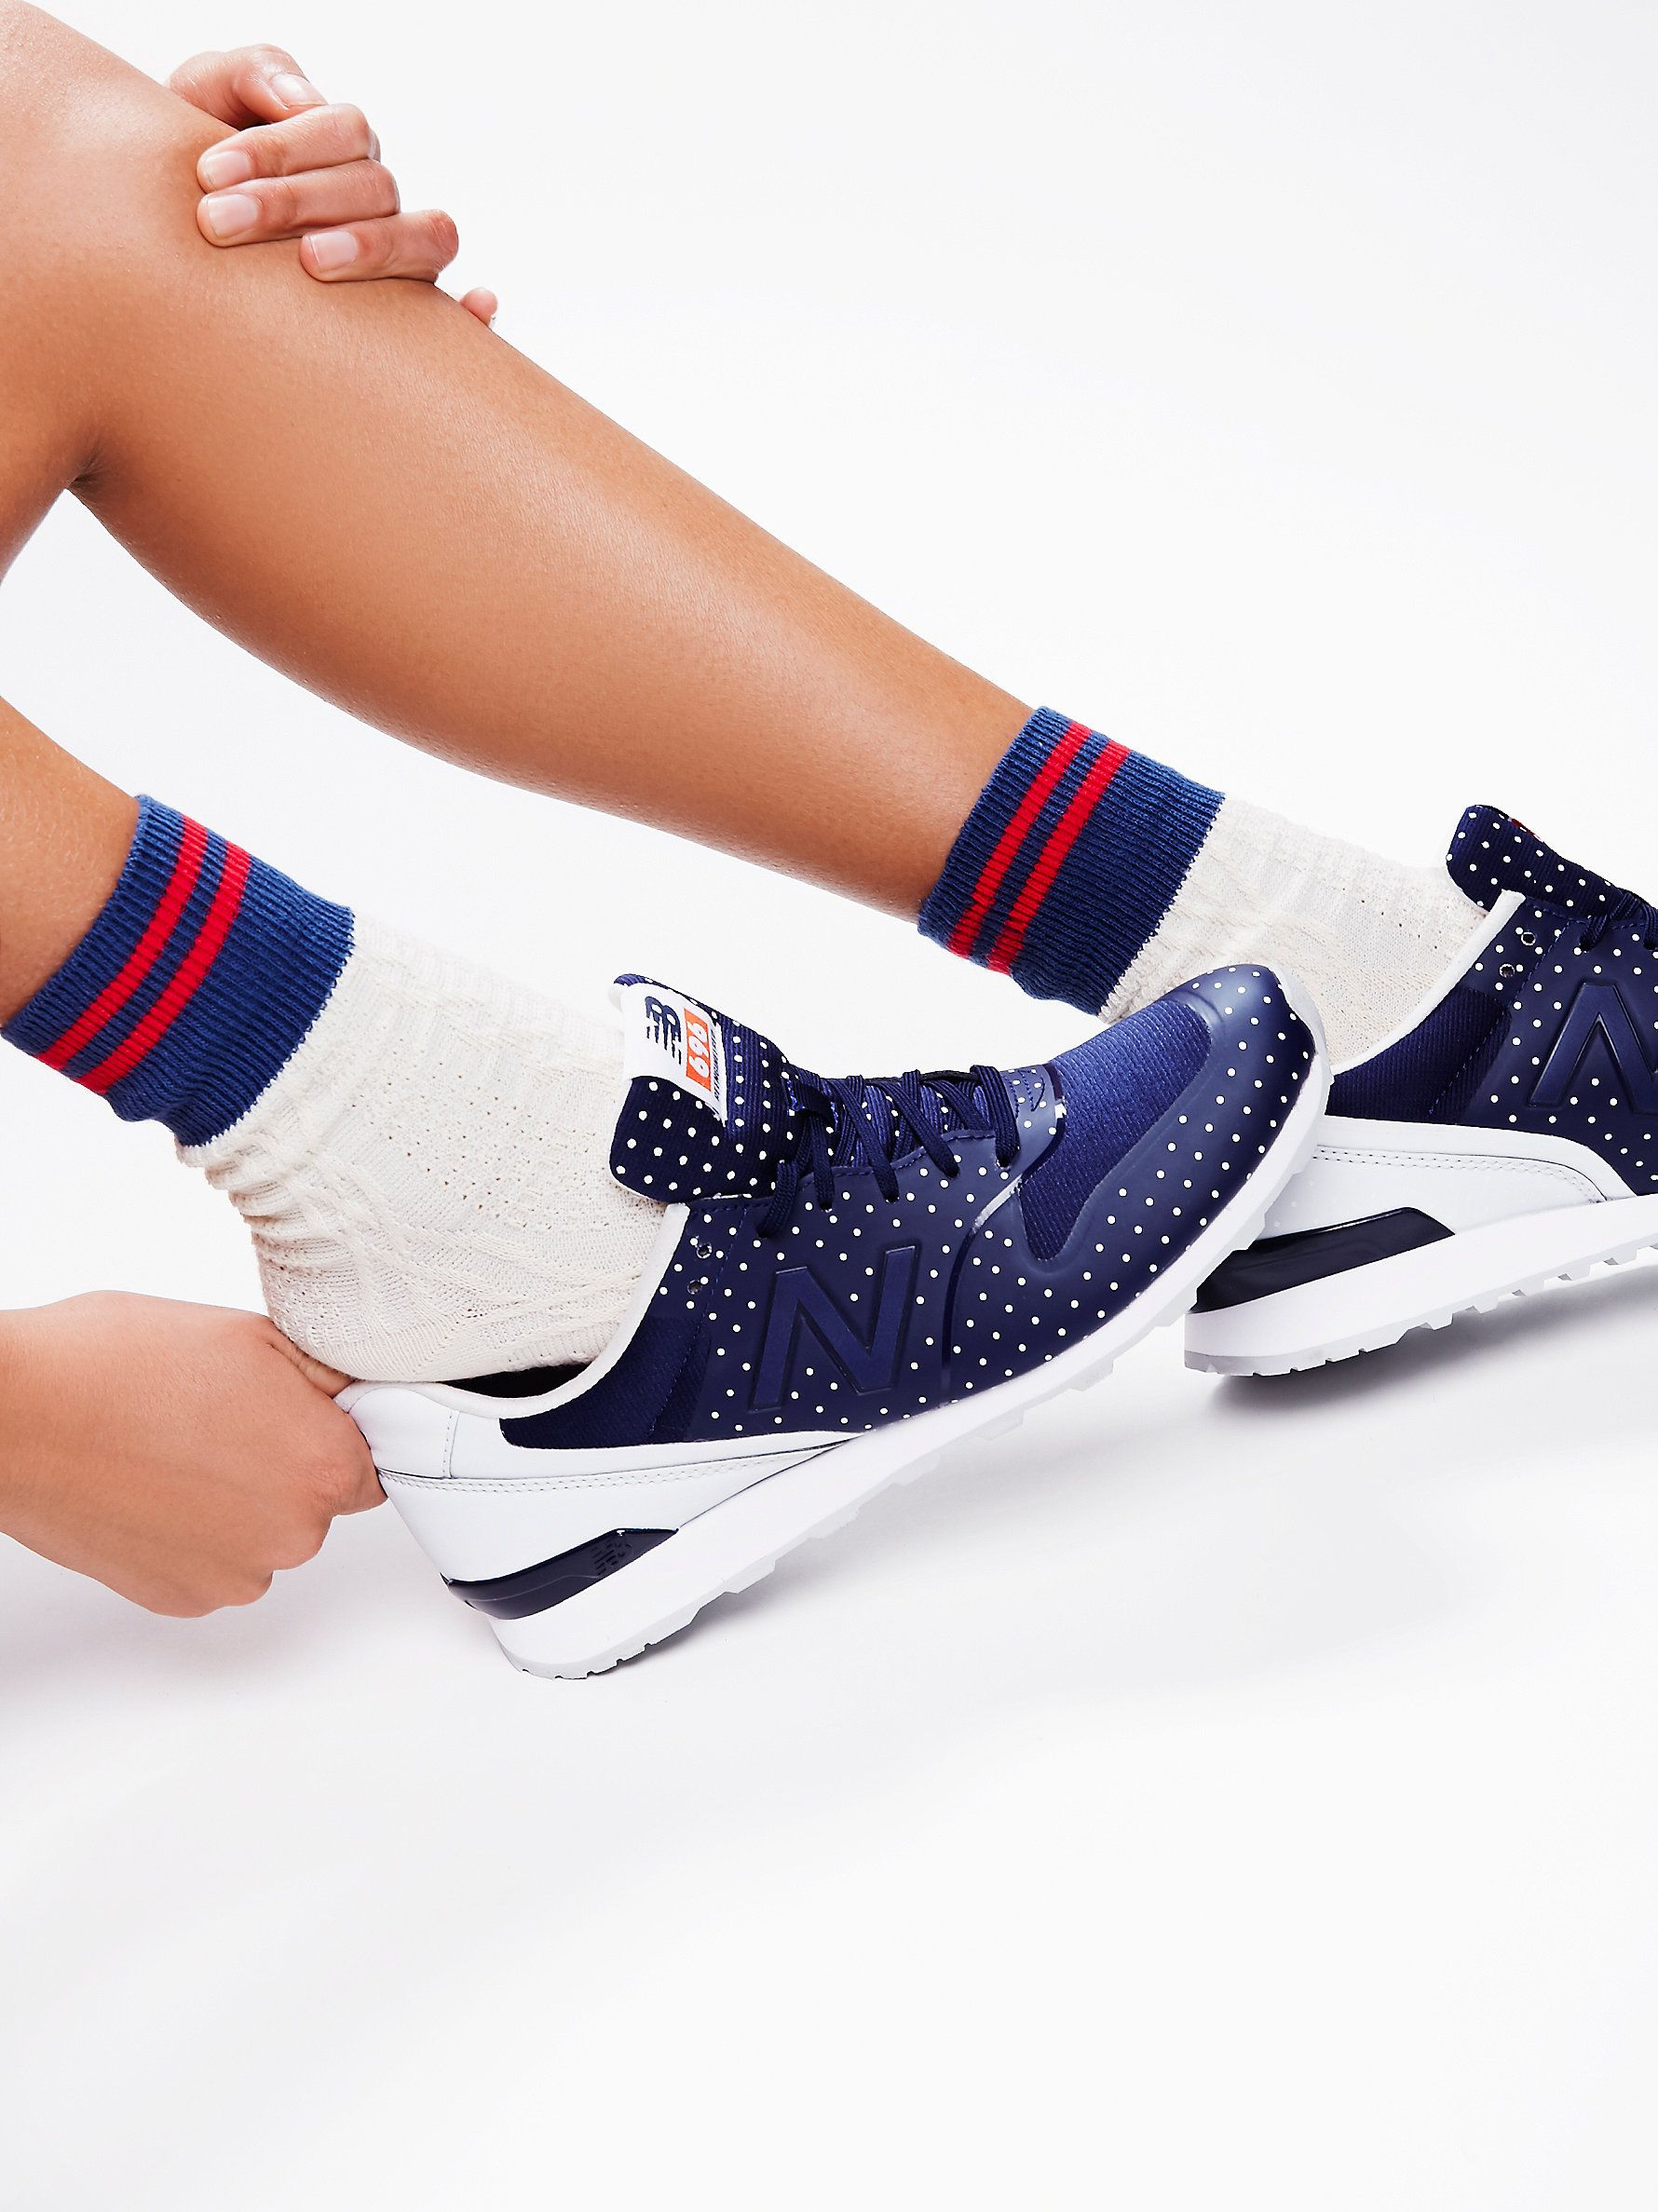 696 Re-Engineered Polka Dot Trainer   New Balance's classic style is reinvented with this lightweight, breathable trainer. Features a cute femme polka dot print.  Cushioned footbed for ultimate support.